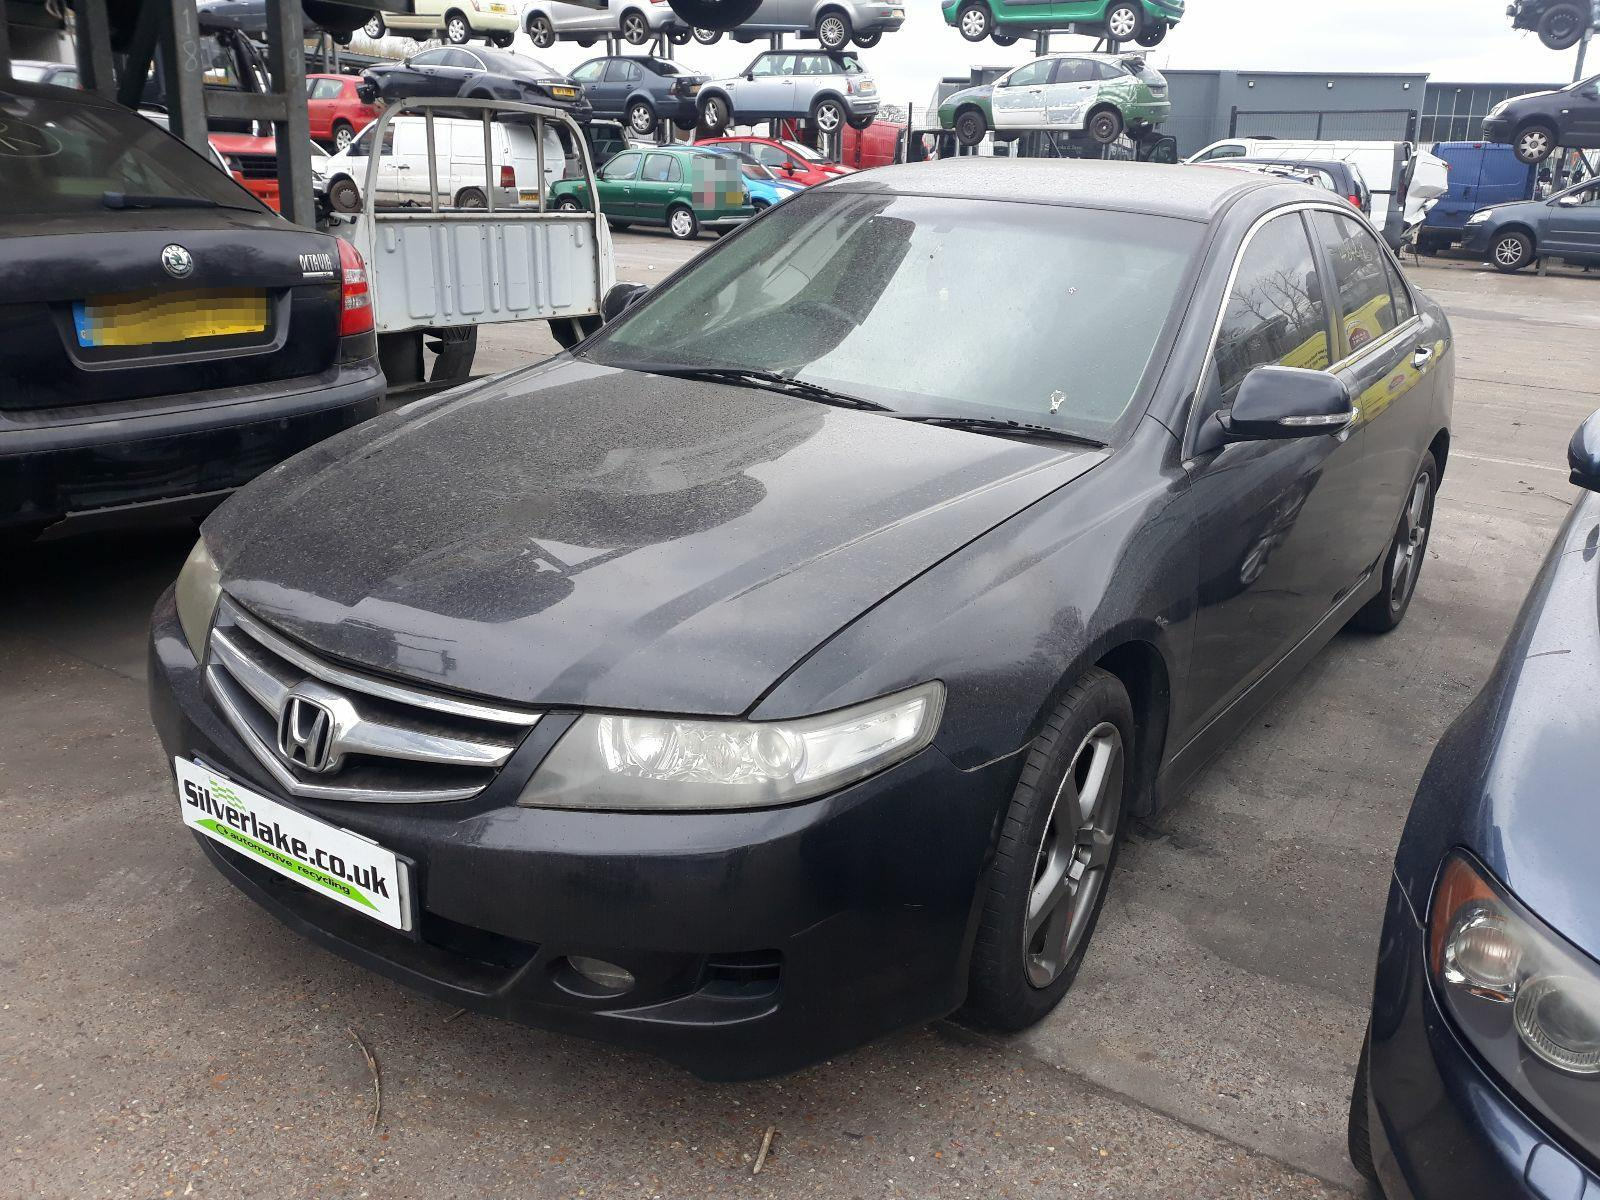 Honda Accord 2006 To 2008 Sport i-CTDi 4 Door Saloon